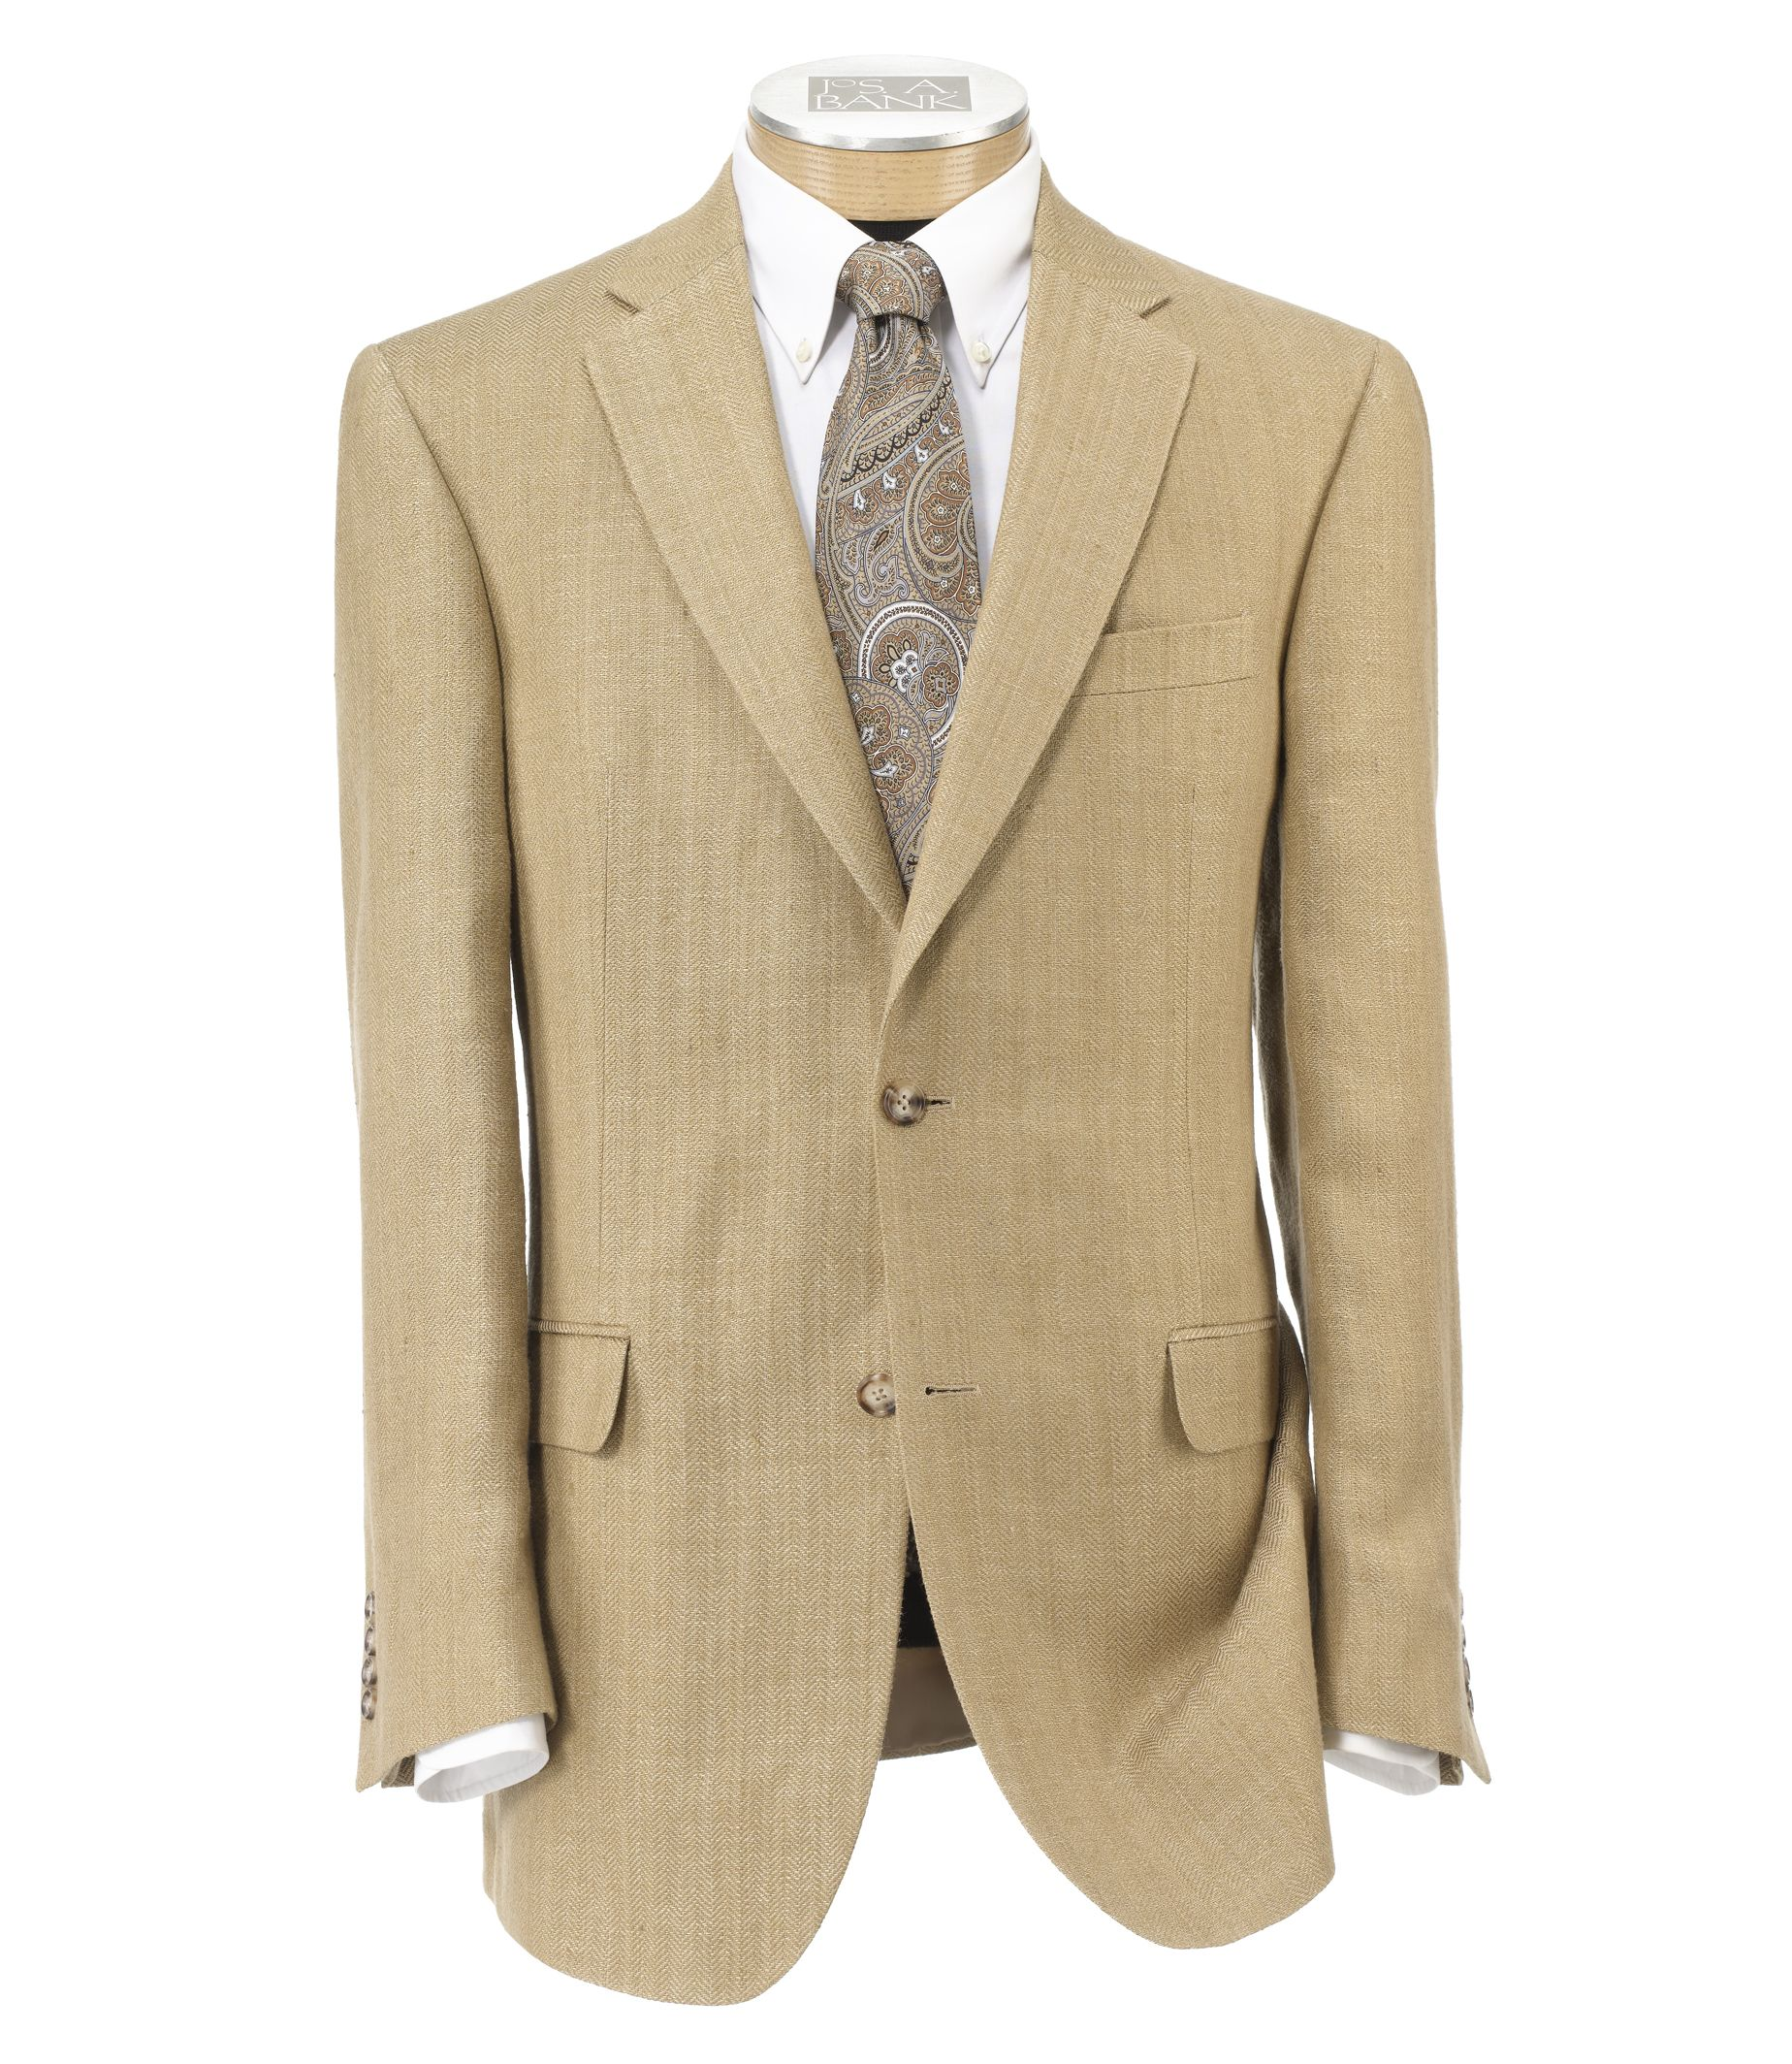 Tropical Blend 2-Button Linen/Silk Sportcoat which was $450 originally is now available at a sale price of $47